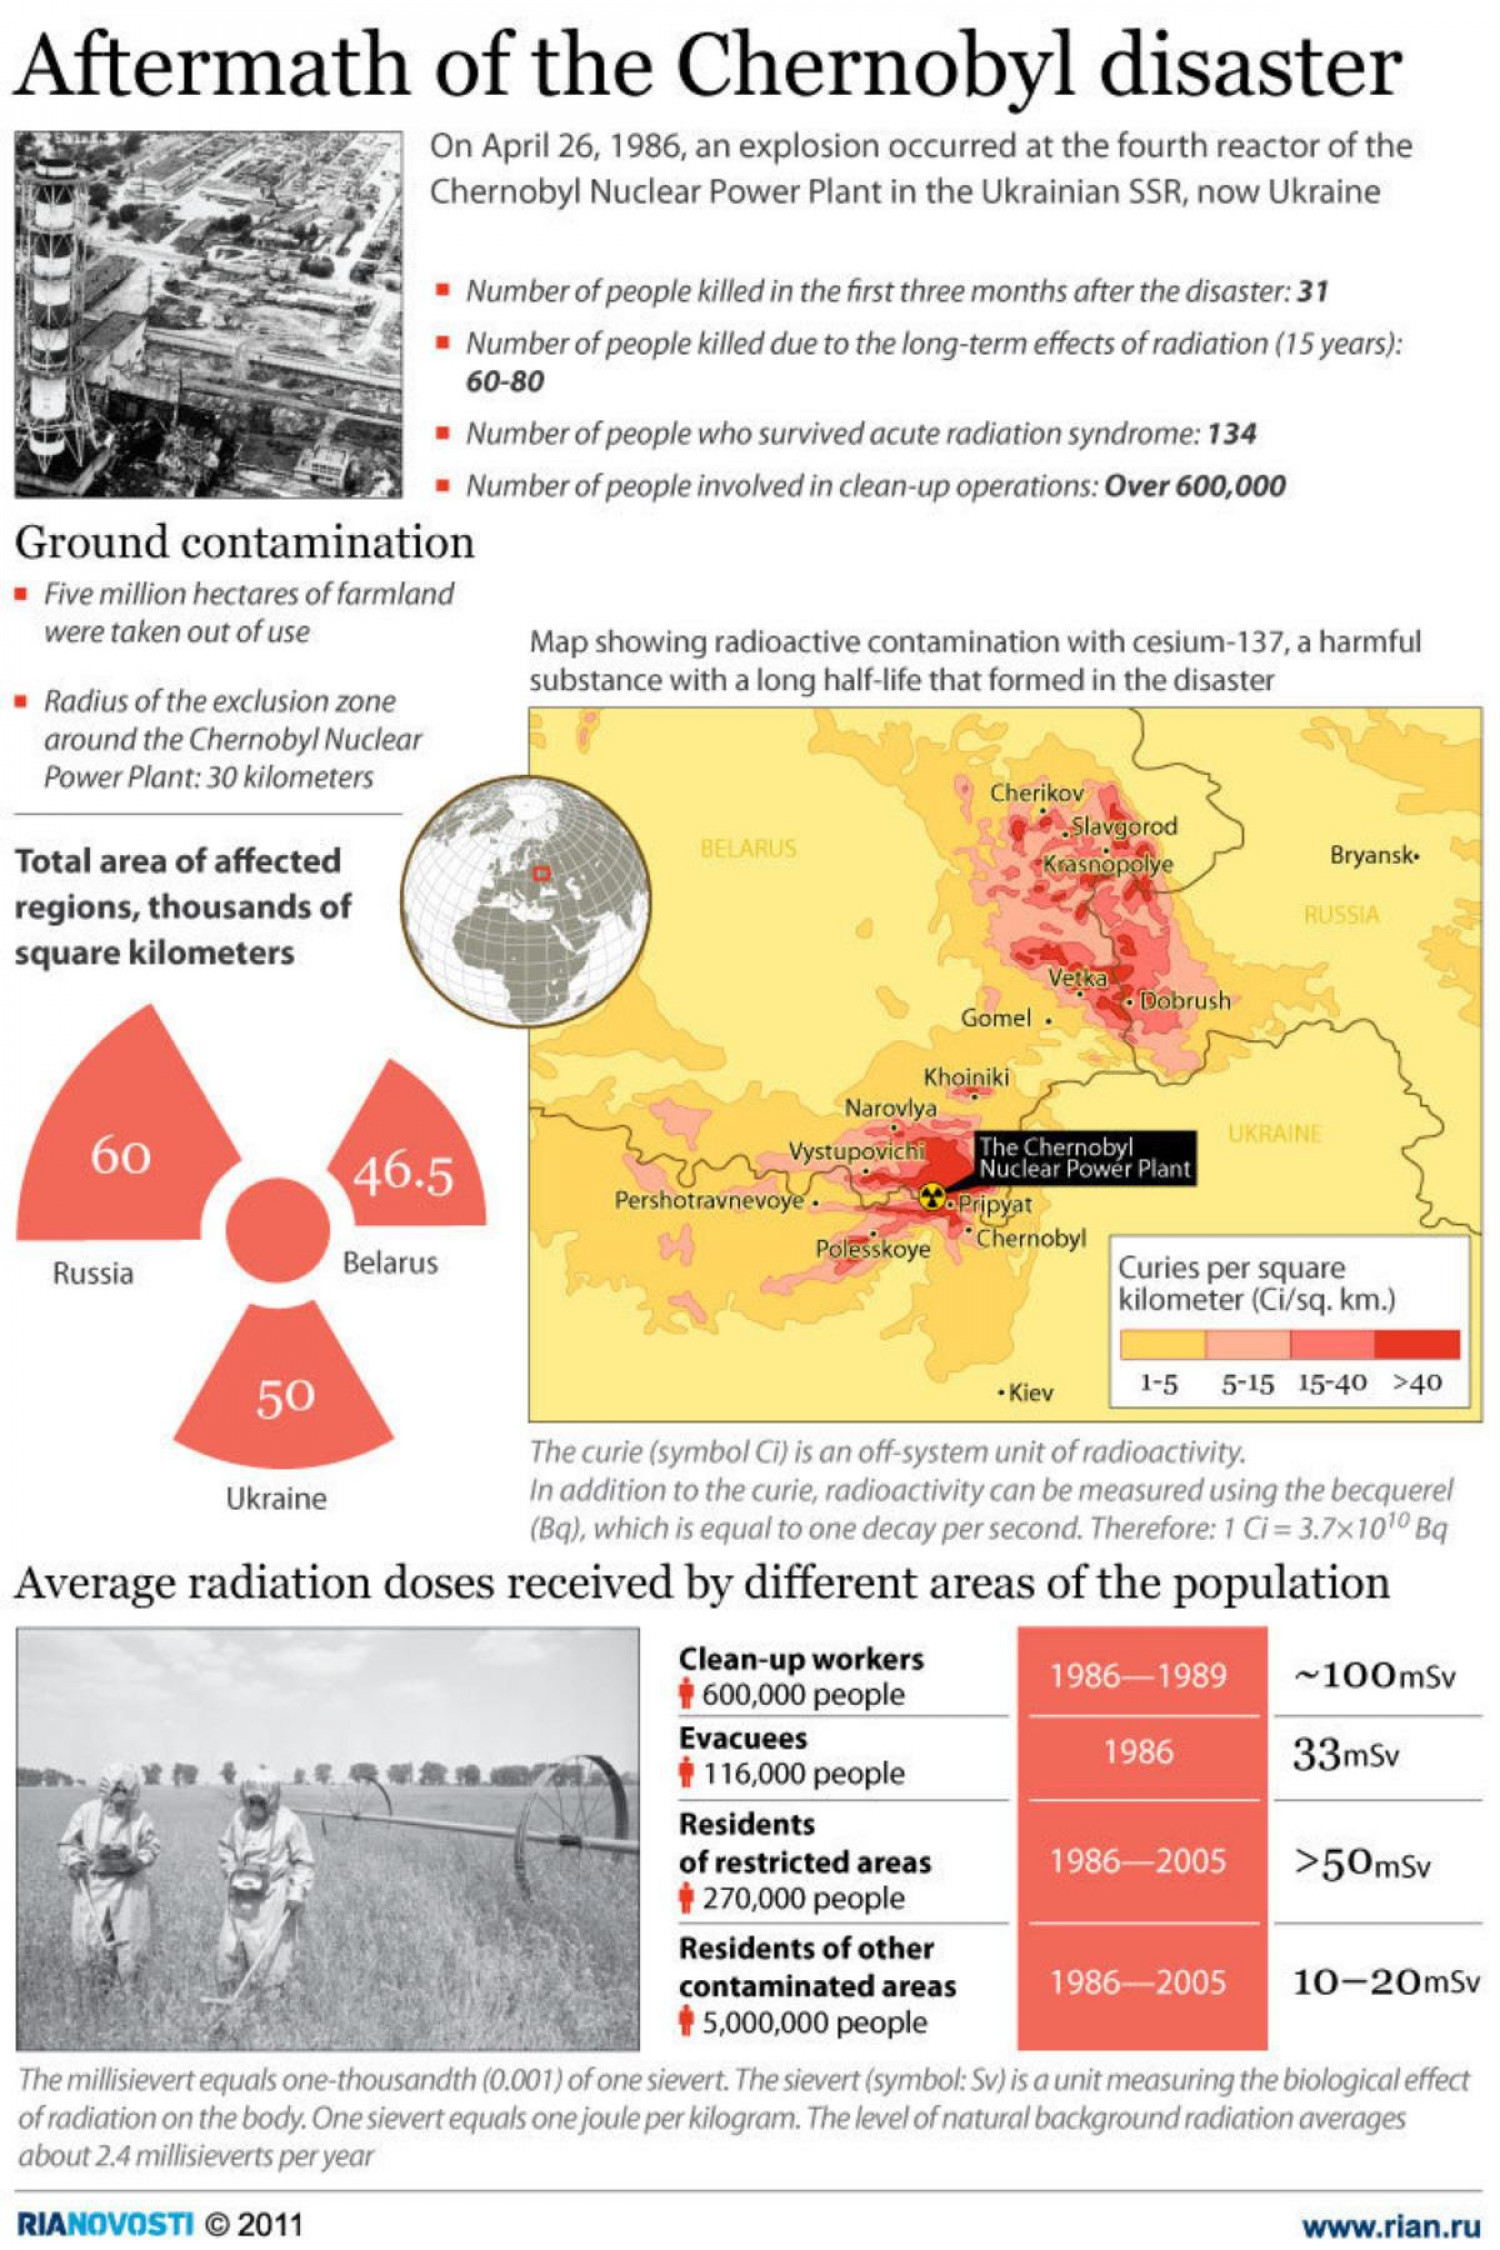 Aftermath of the Chernobyl disaster Infographic